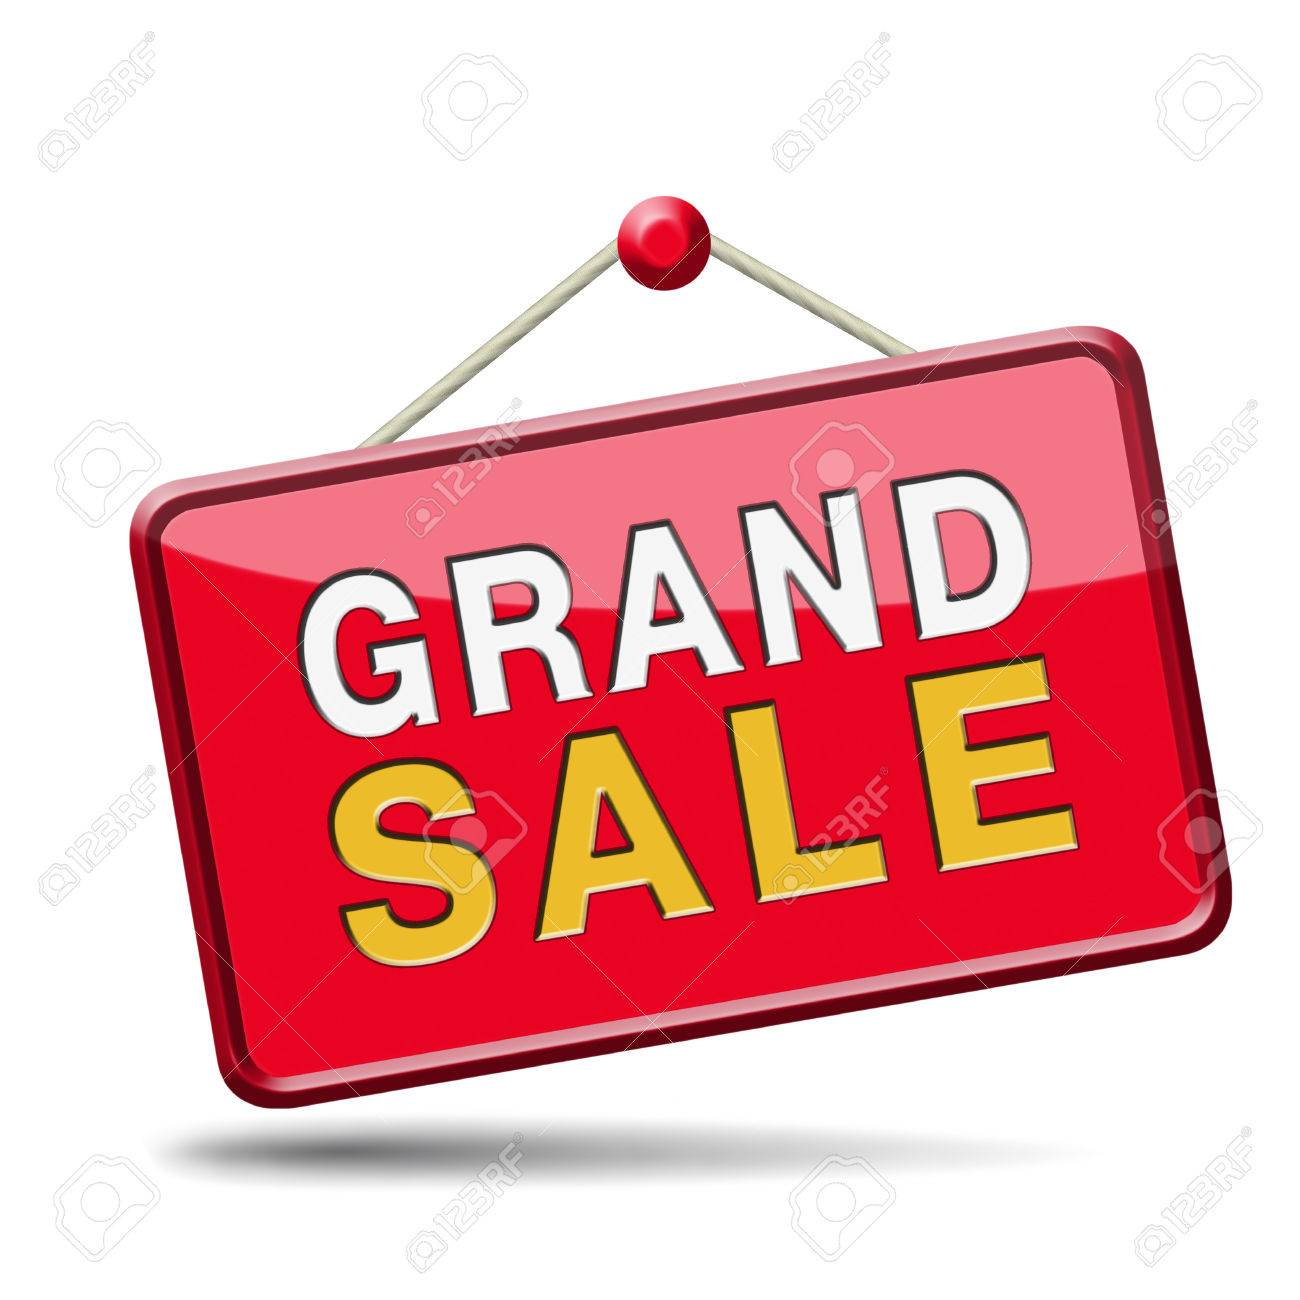 grand sale sales and reduced prices off authorization granted